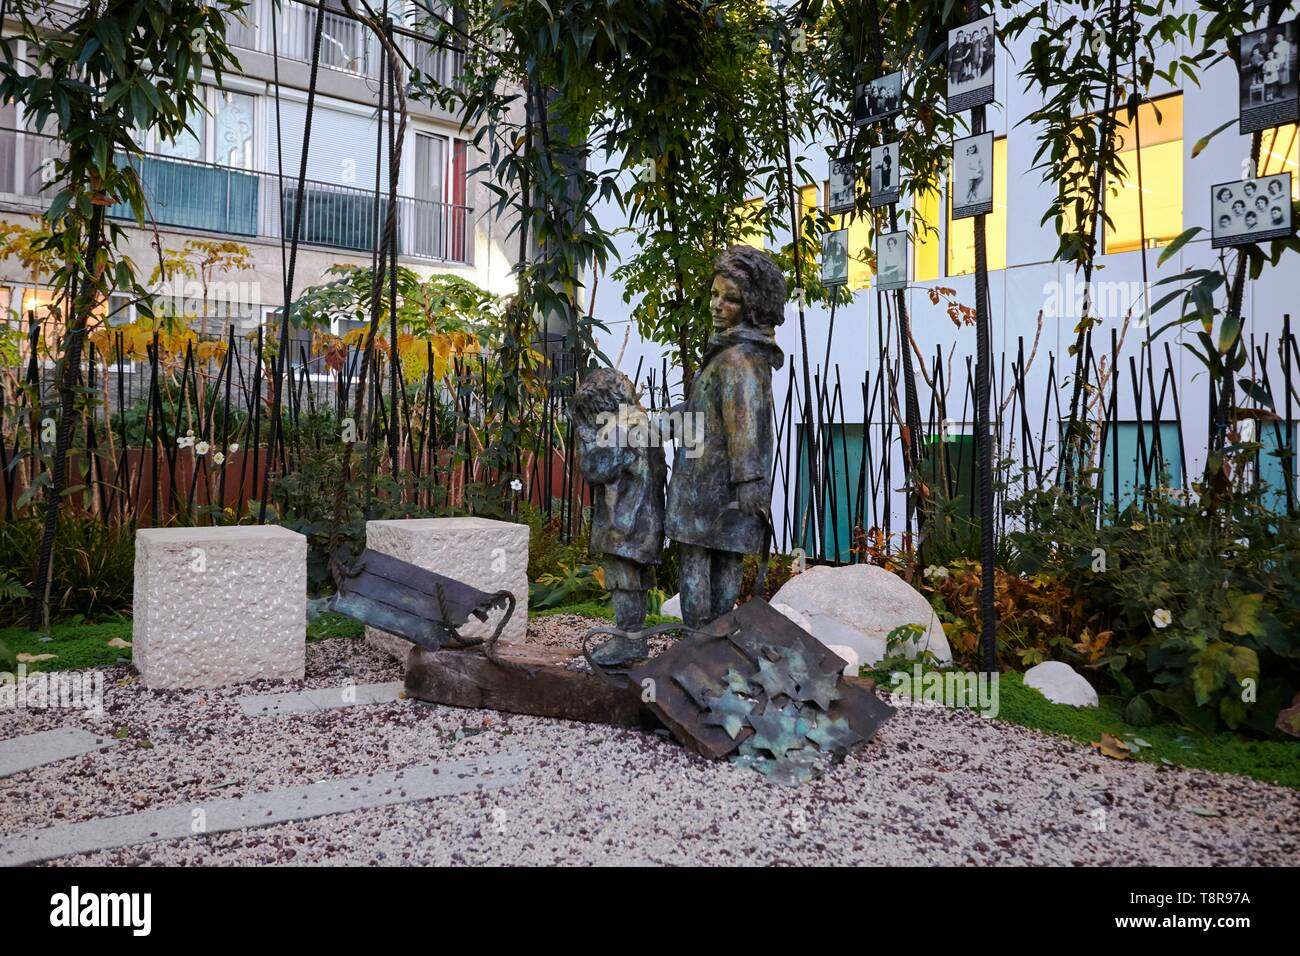 France, Paris, Grenelle district, rue Nelaton, Memorial Garden of the Children's Vel'd'Hiv, on the site of the former Velodrome d'Hiver, in memory of the raid on 16 and 17 July 1942, the largest arrest of Jews in France during World War II - Stock Image